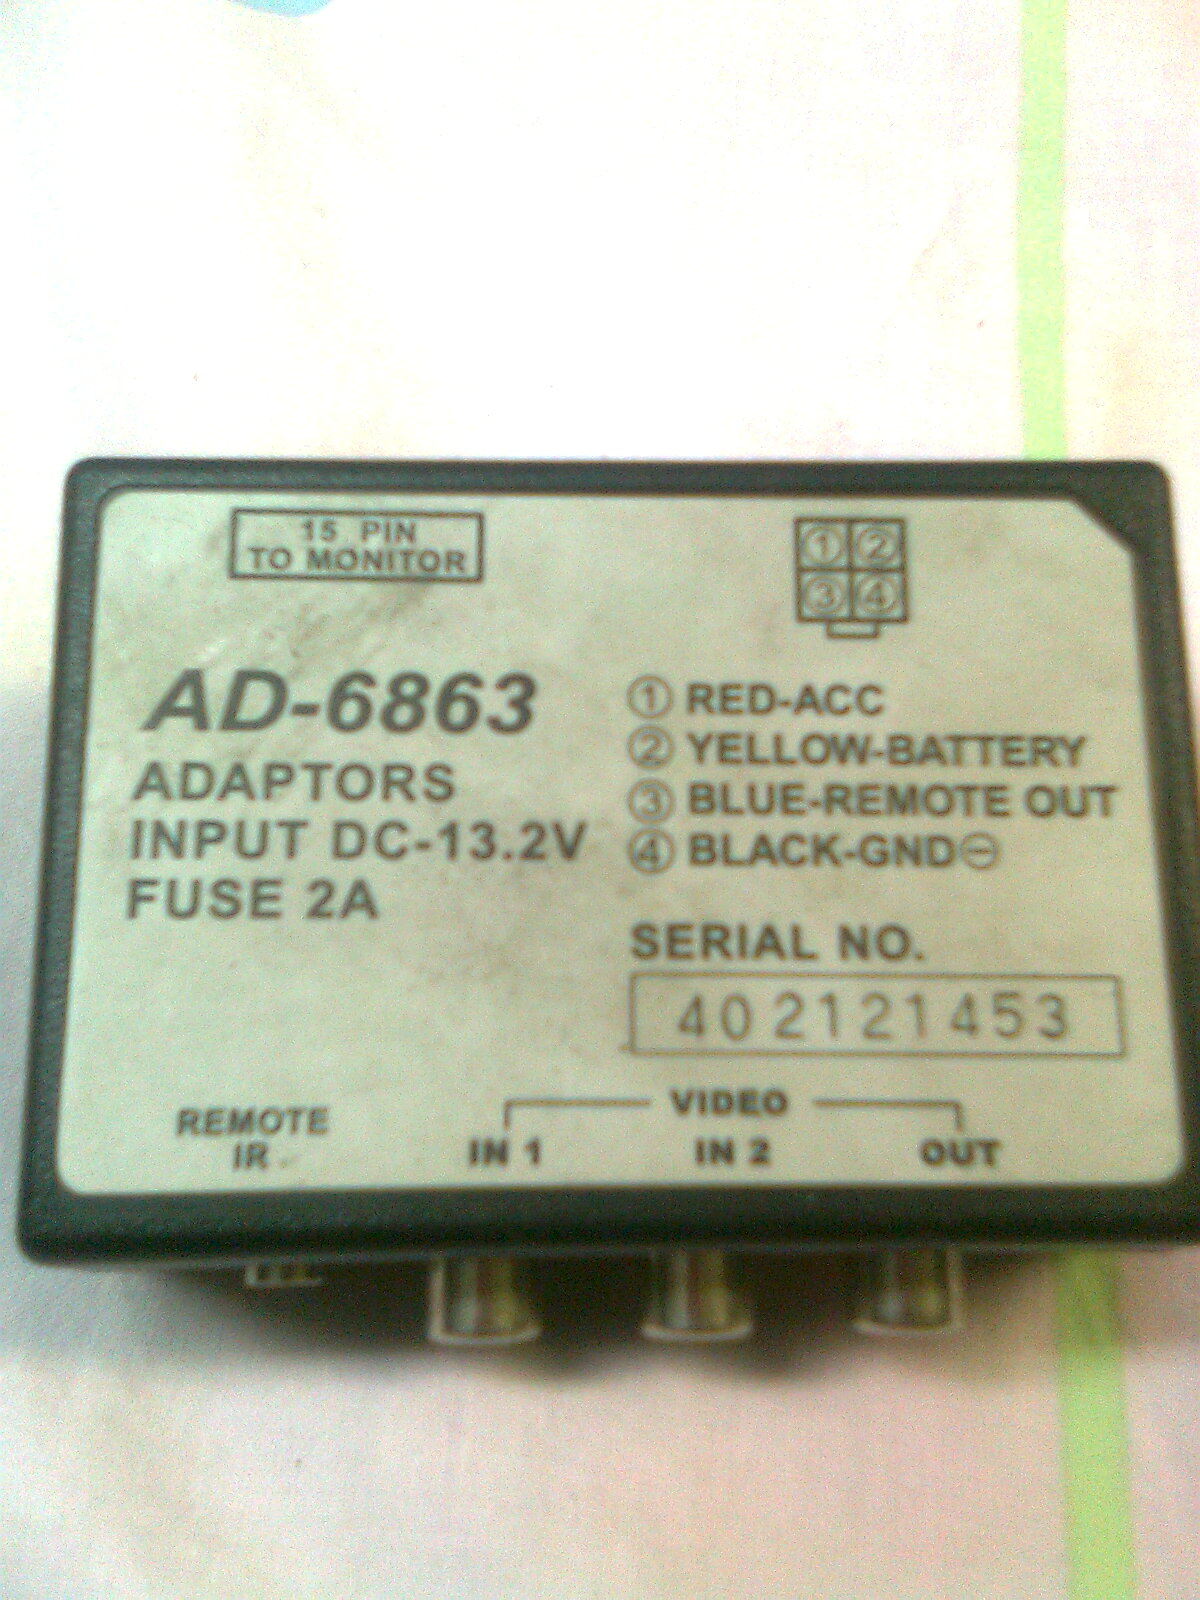 [Kupi�] Adapter AD-6863 do DVD w Toyota Corolla Verso